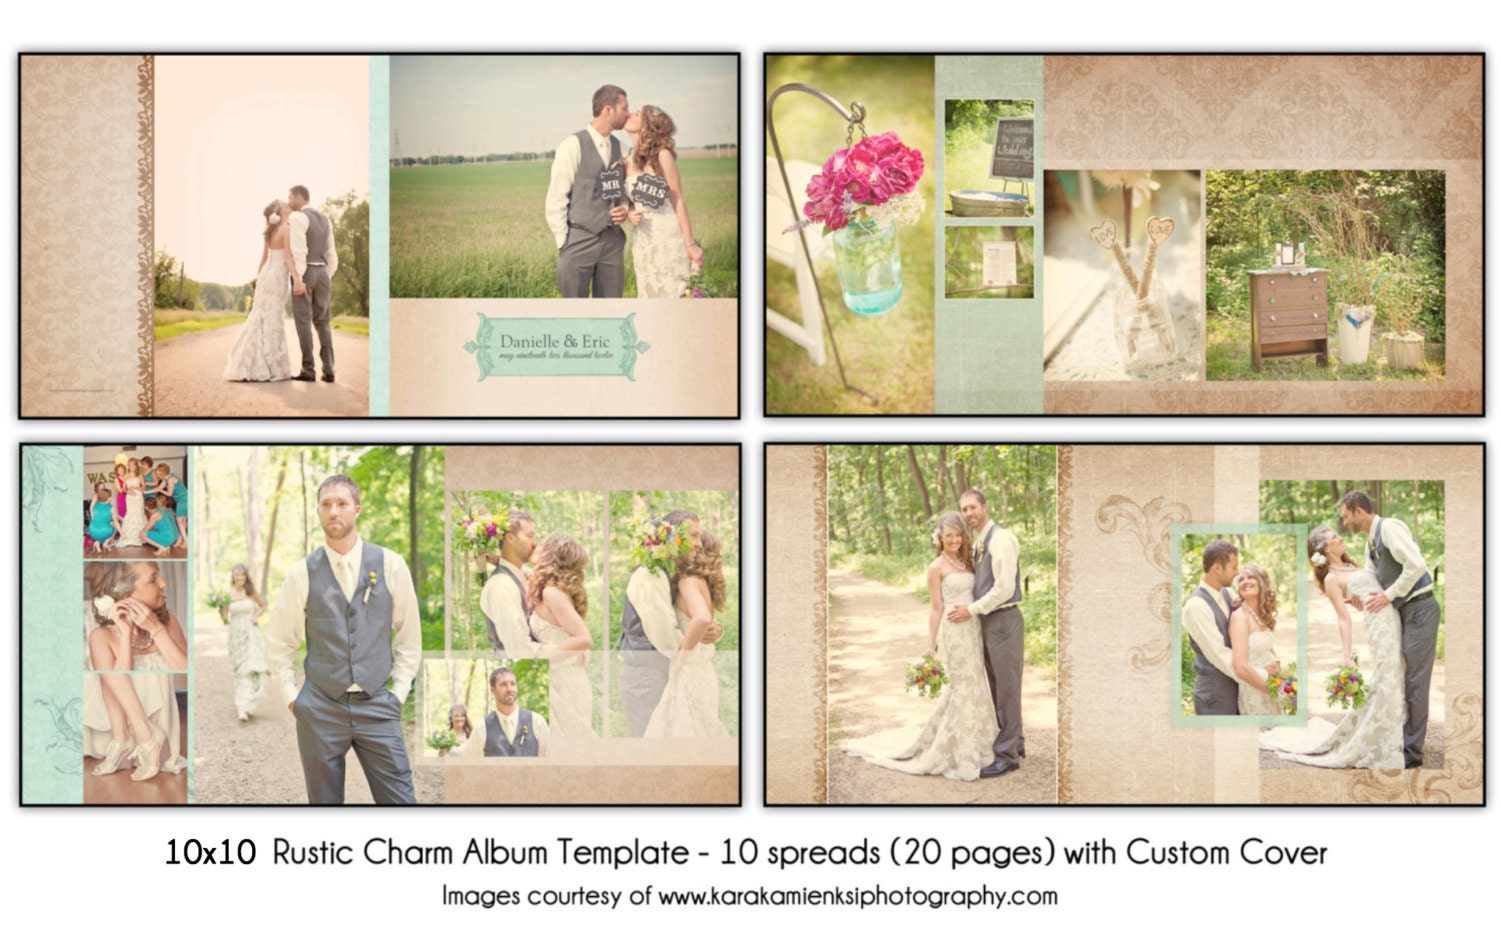 RUSTIC CHARM 10x10 Wedding Album Template 10 spread